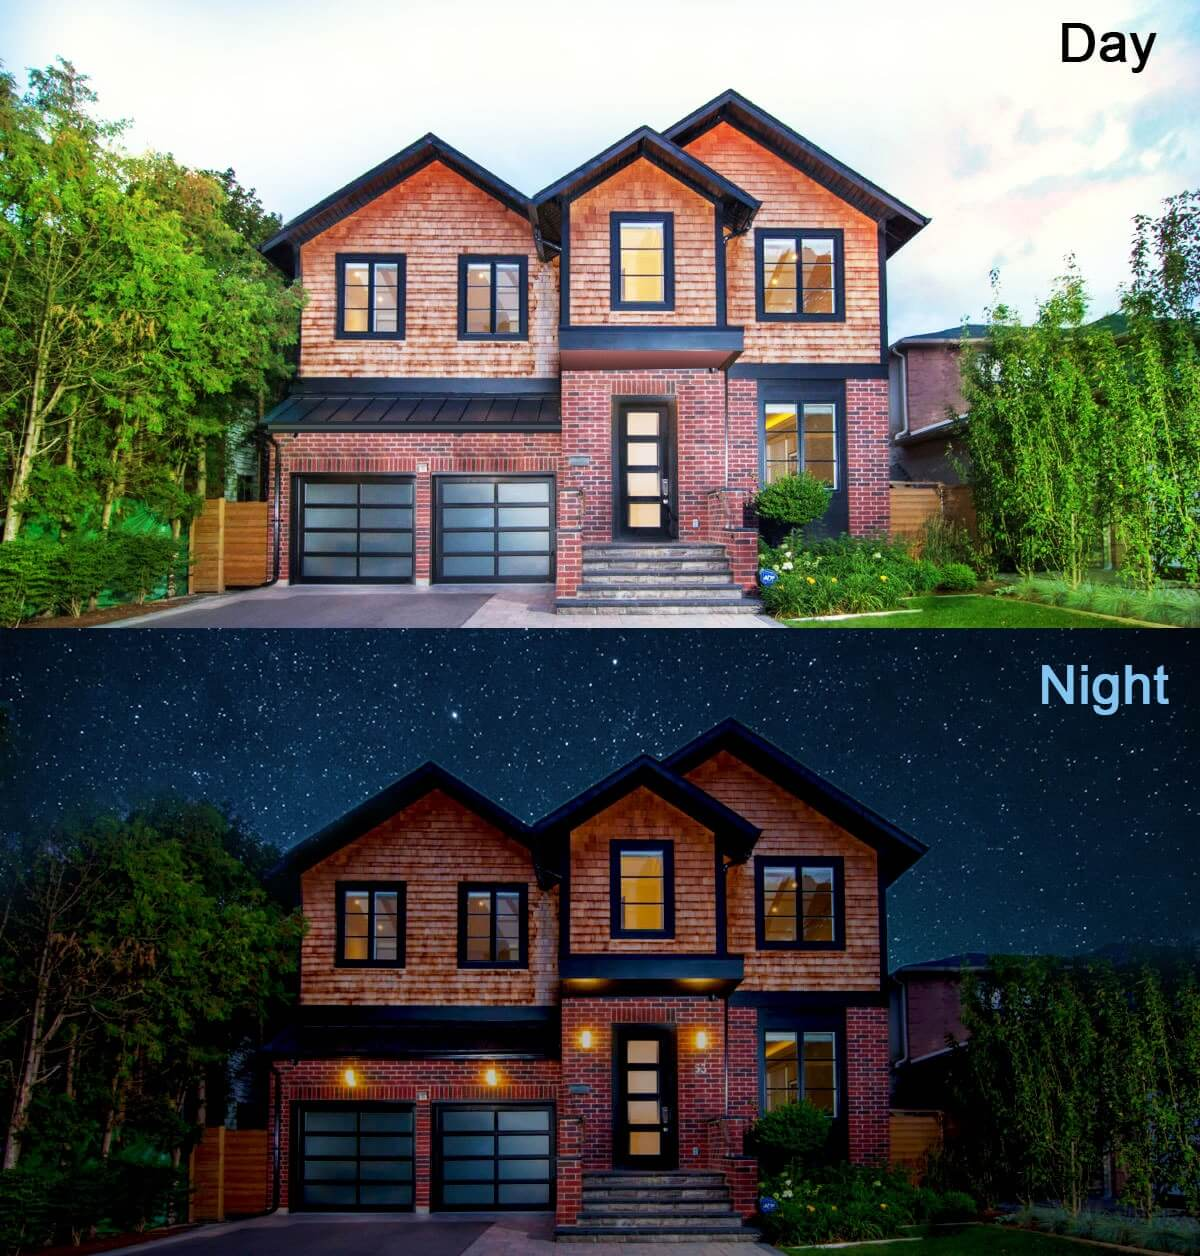 Day to night effect